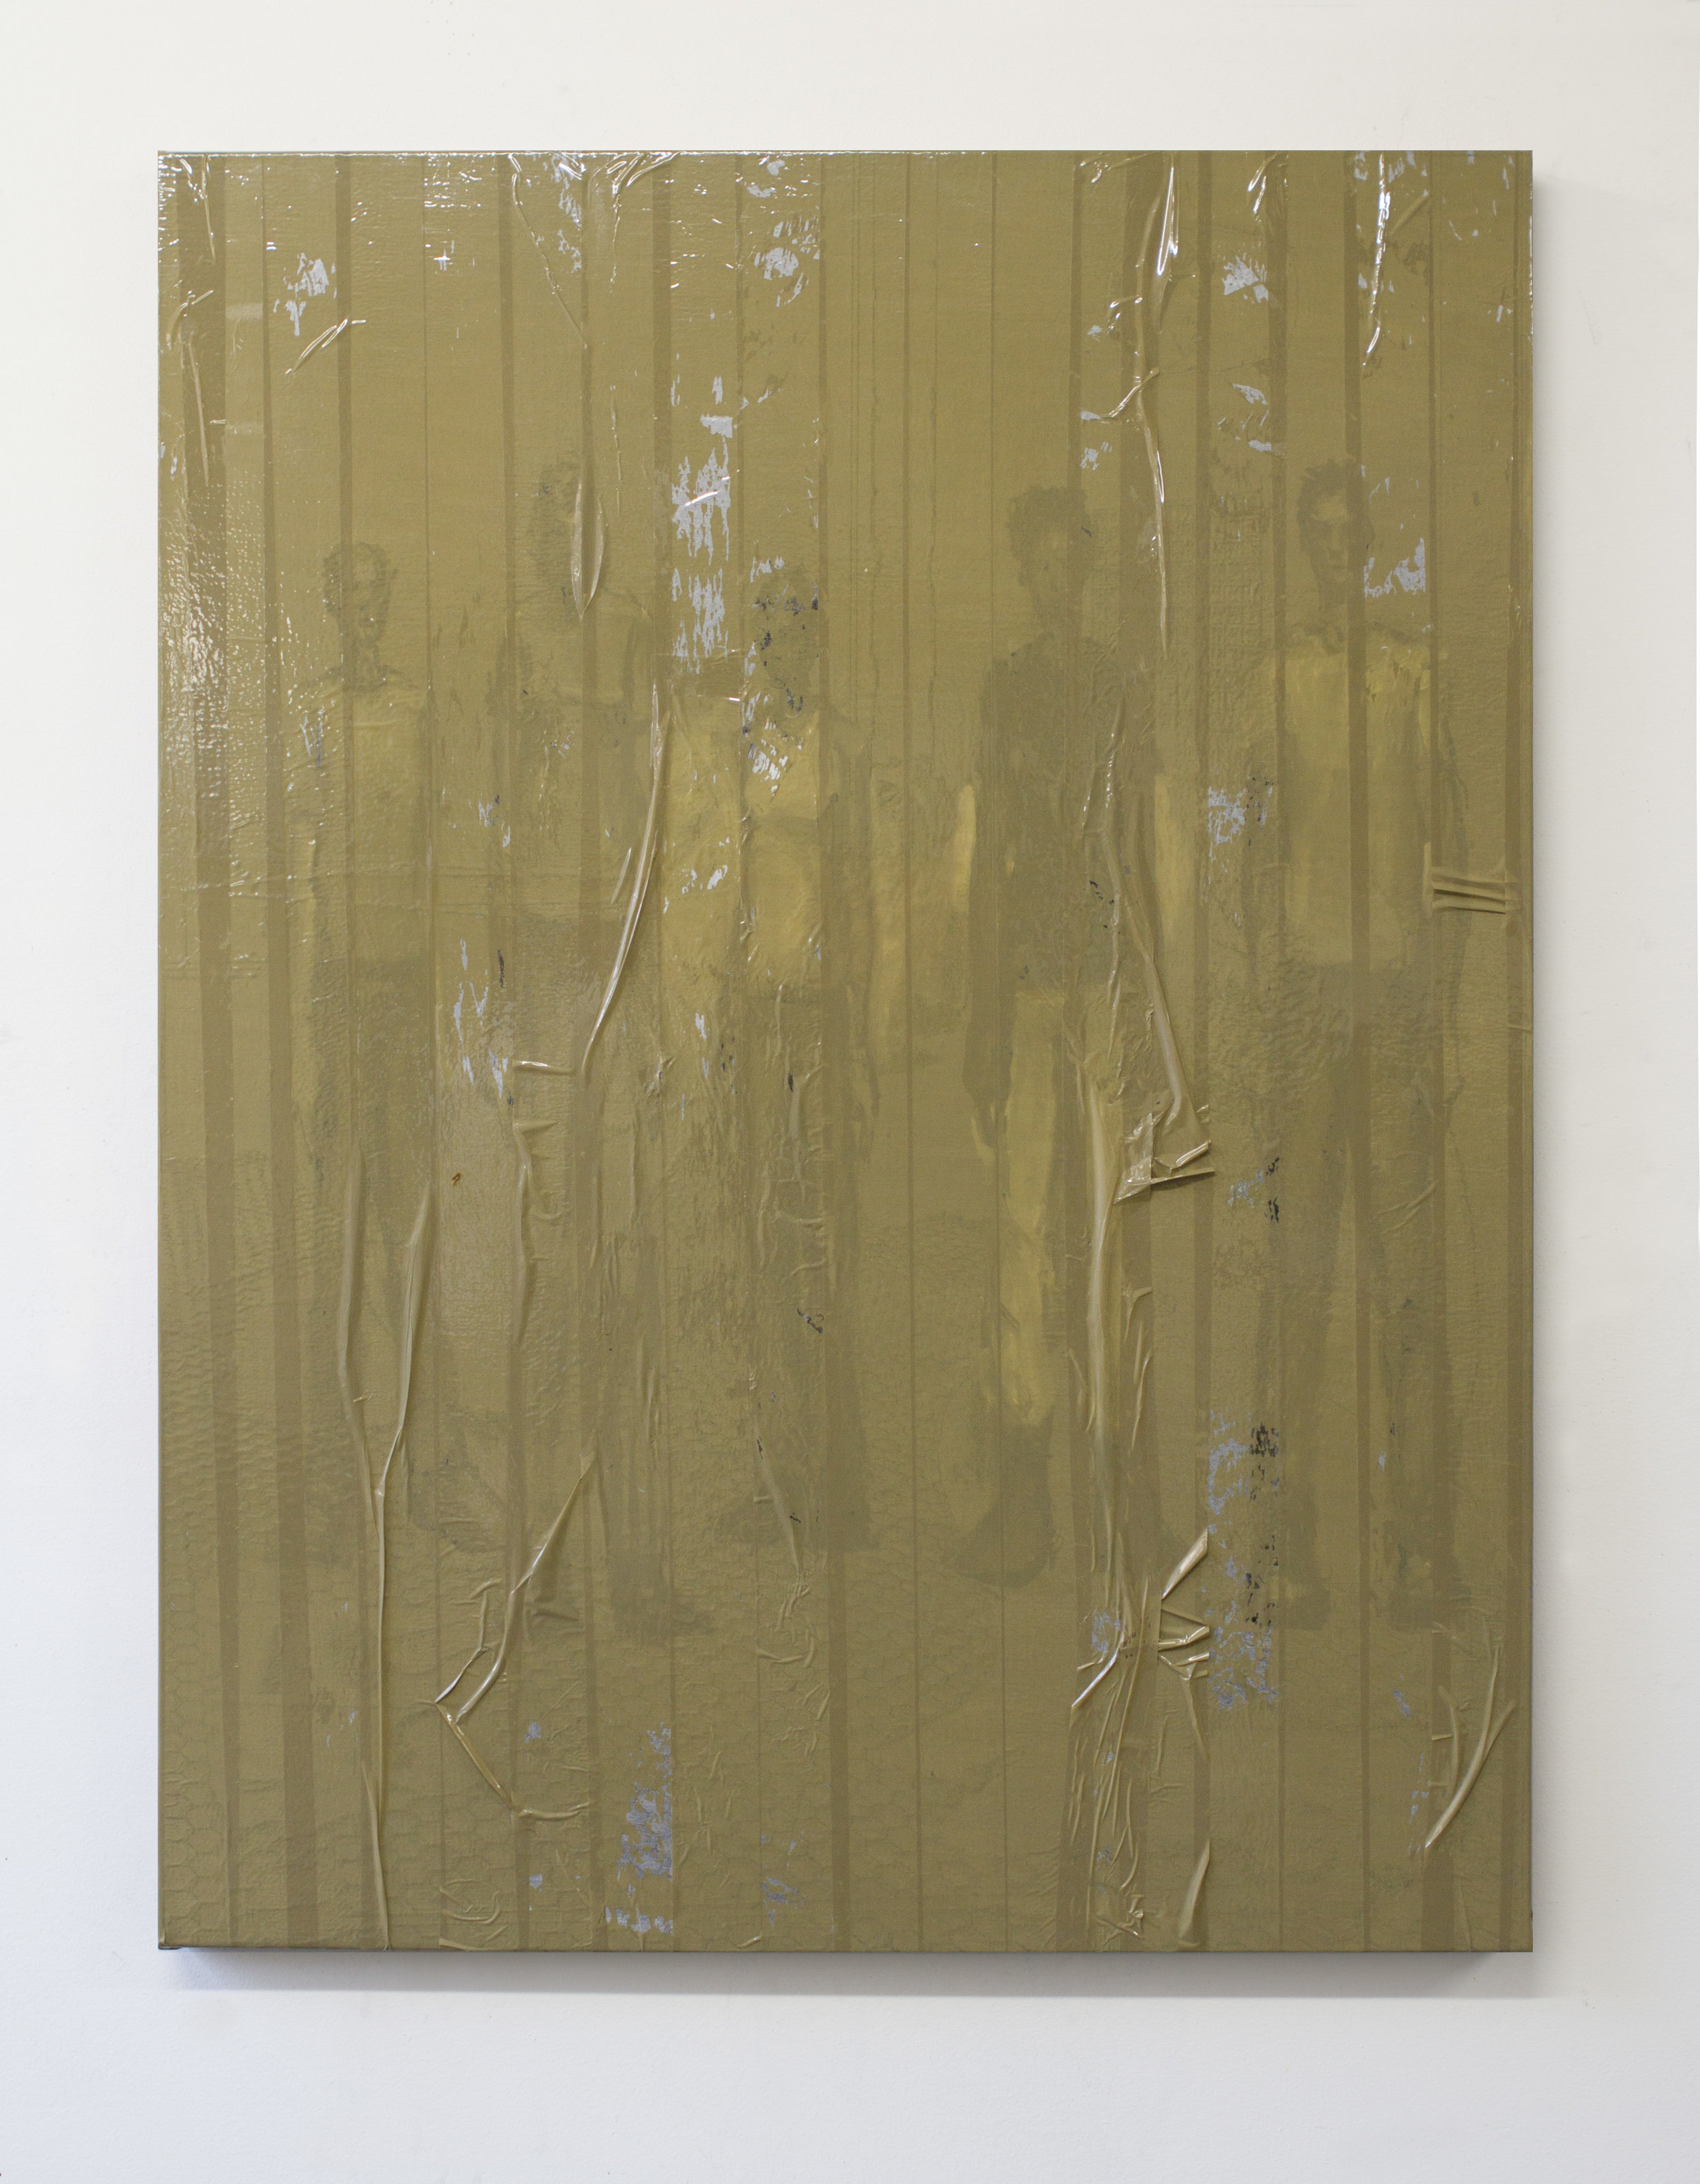 Study for Punks Not Dead 2017 oil and packing tape on linen 38 x 29 inches